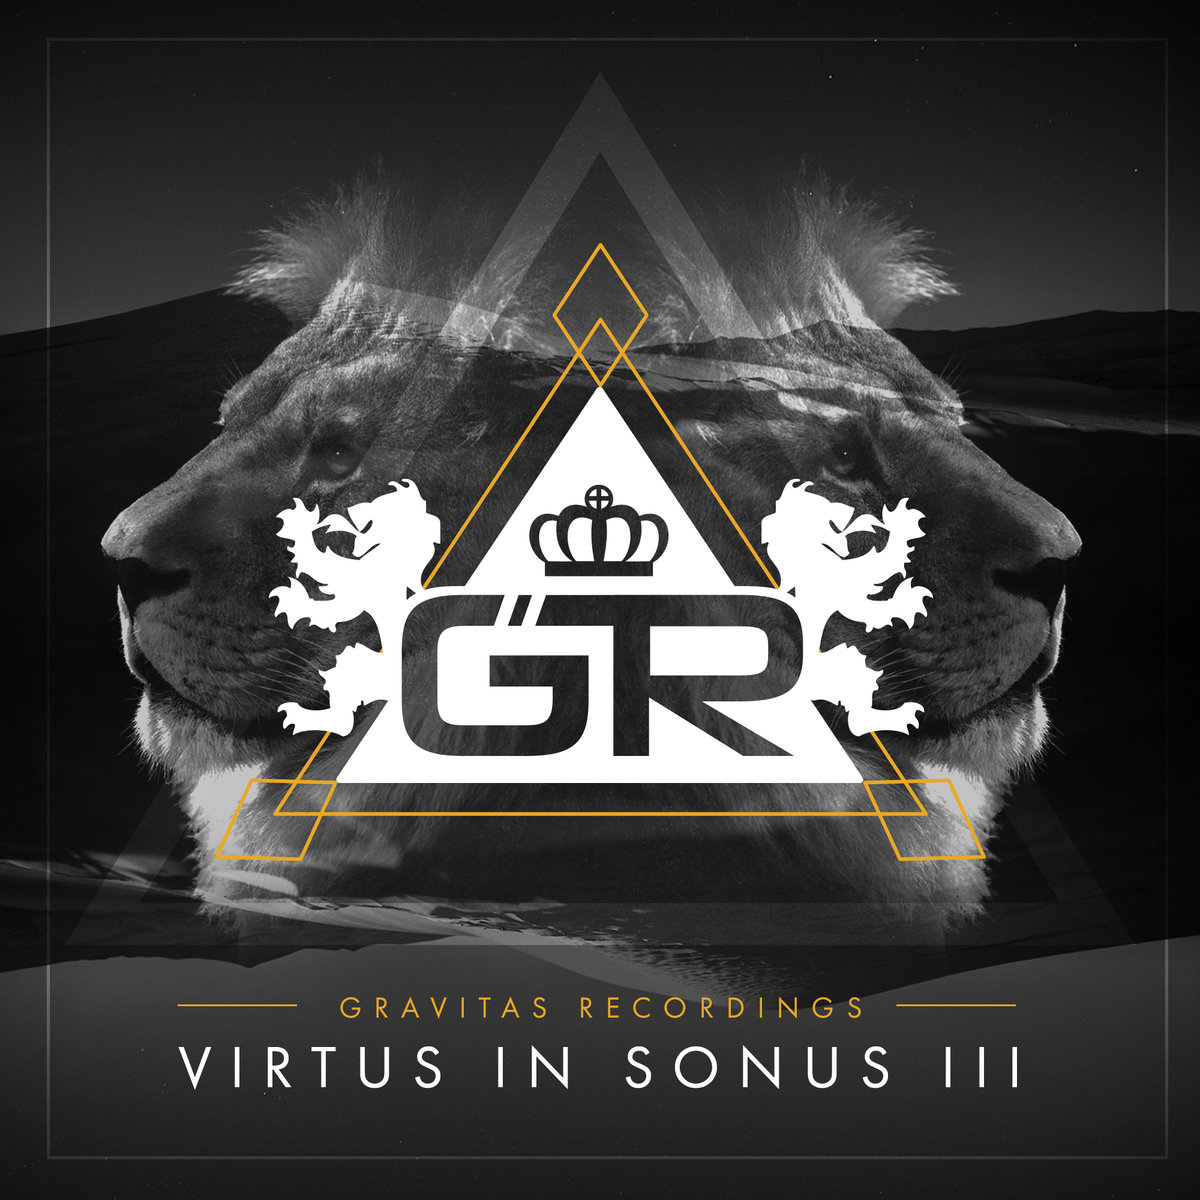 Mugsy - Perhaps @ 'Virtus In Sonus III' album (Austin)